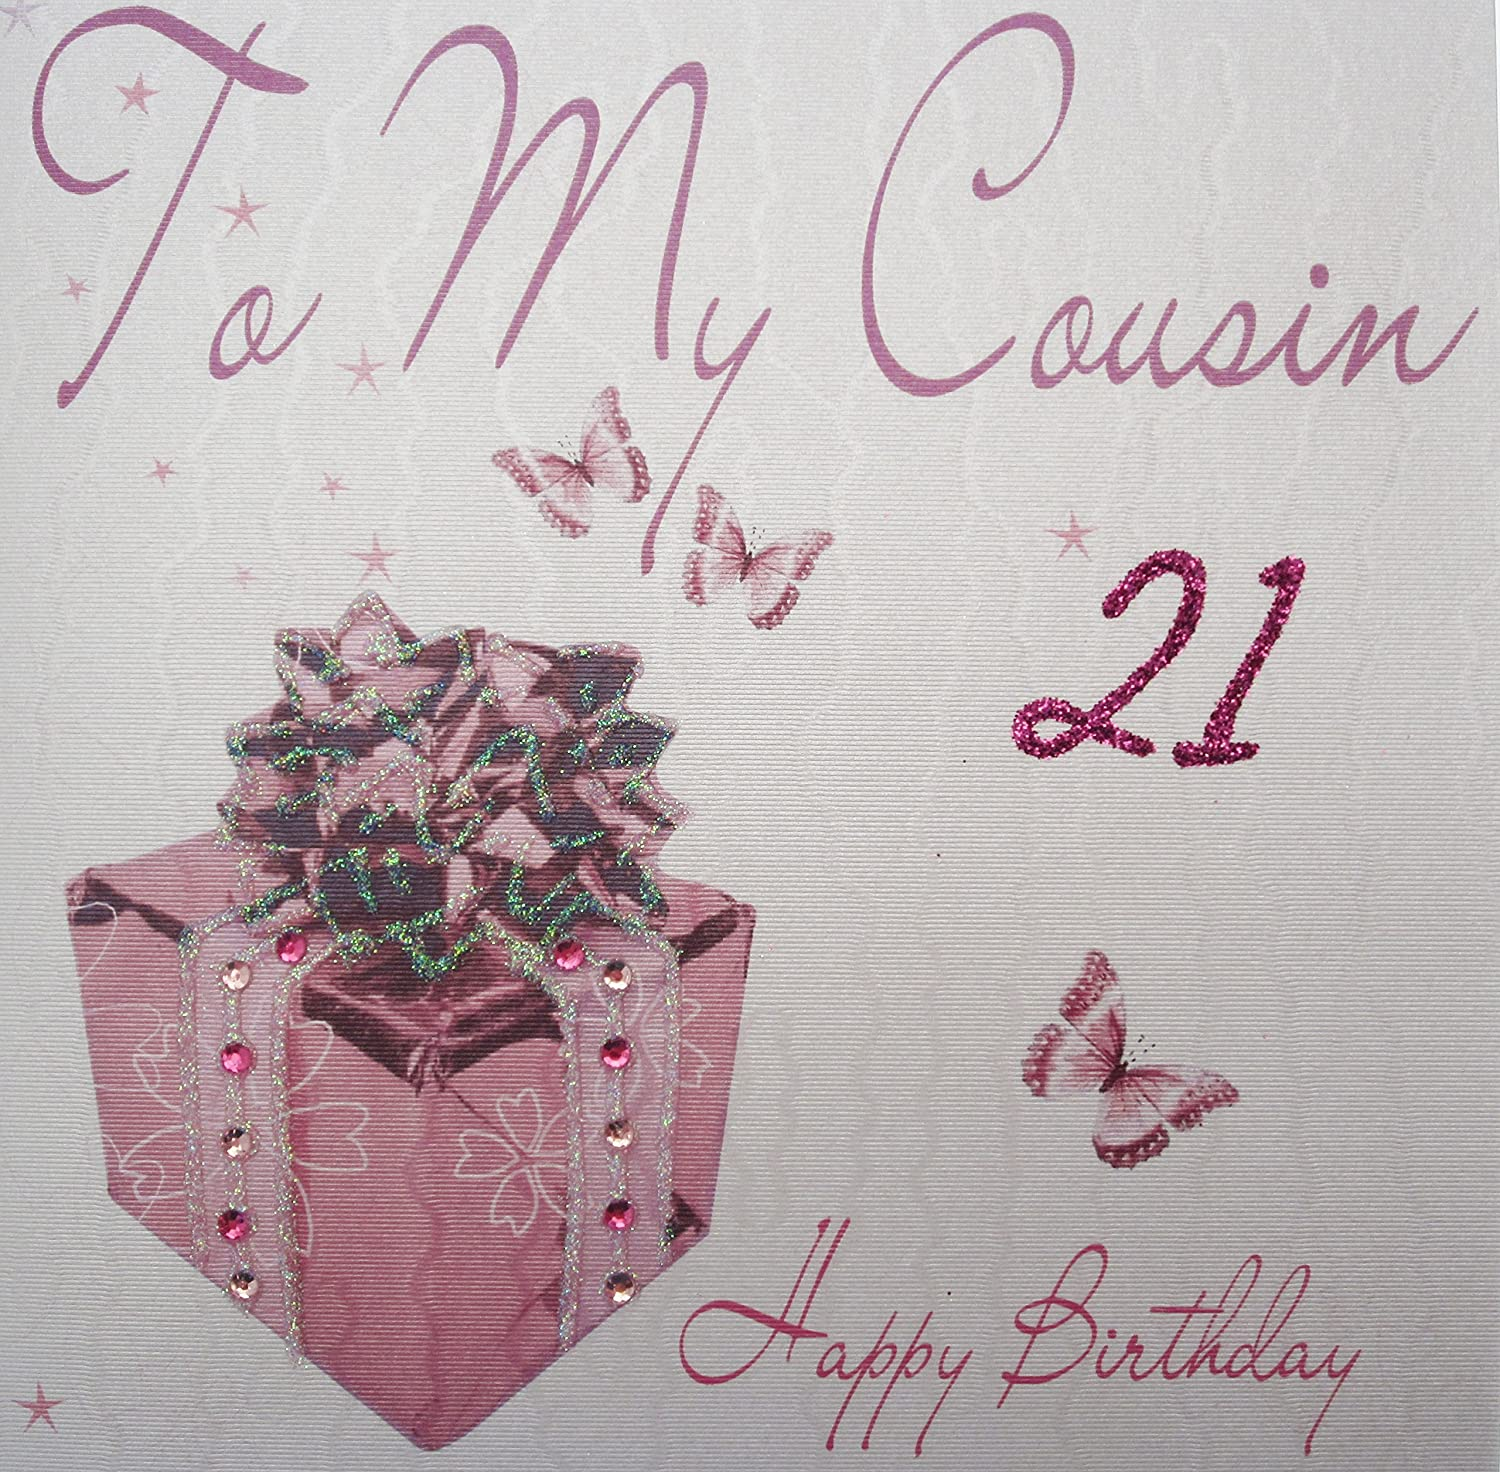 Special Niece 21st Birthday Birthday Card Amazoncouk Kitchen – Niece 21st Birthday Cards